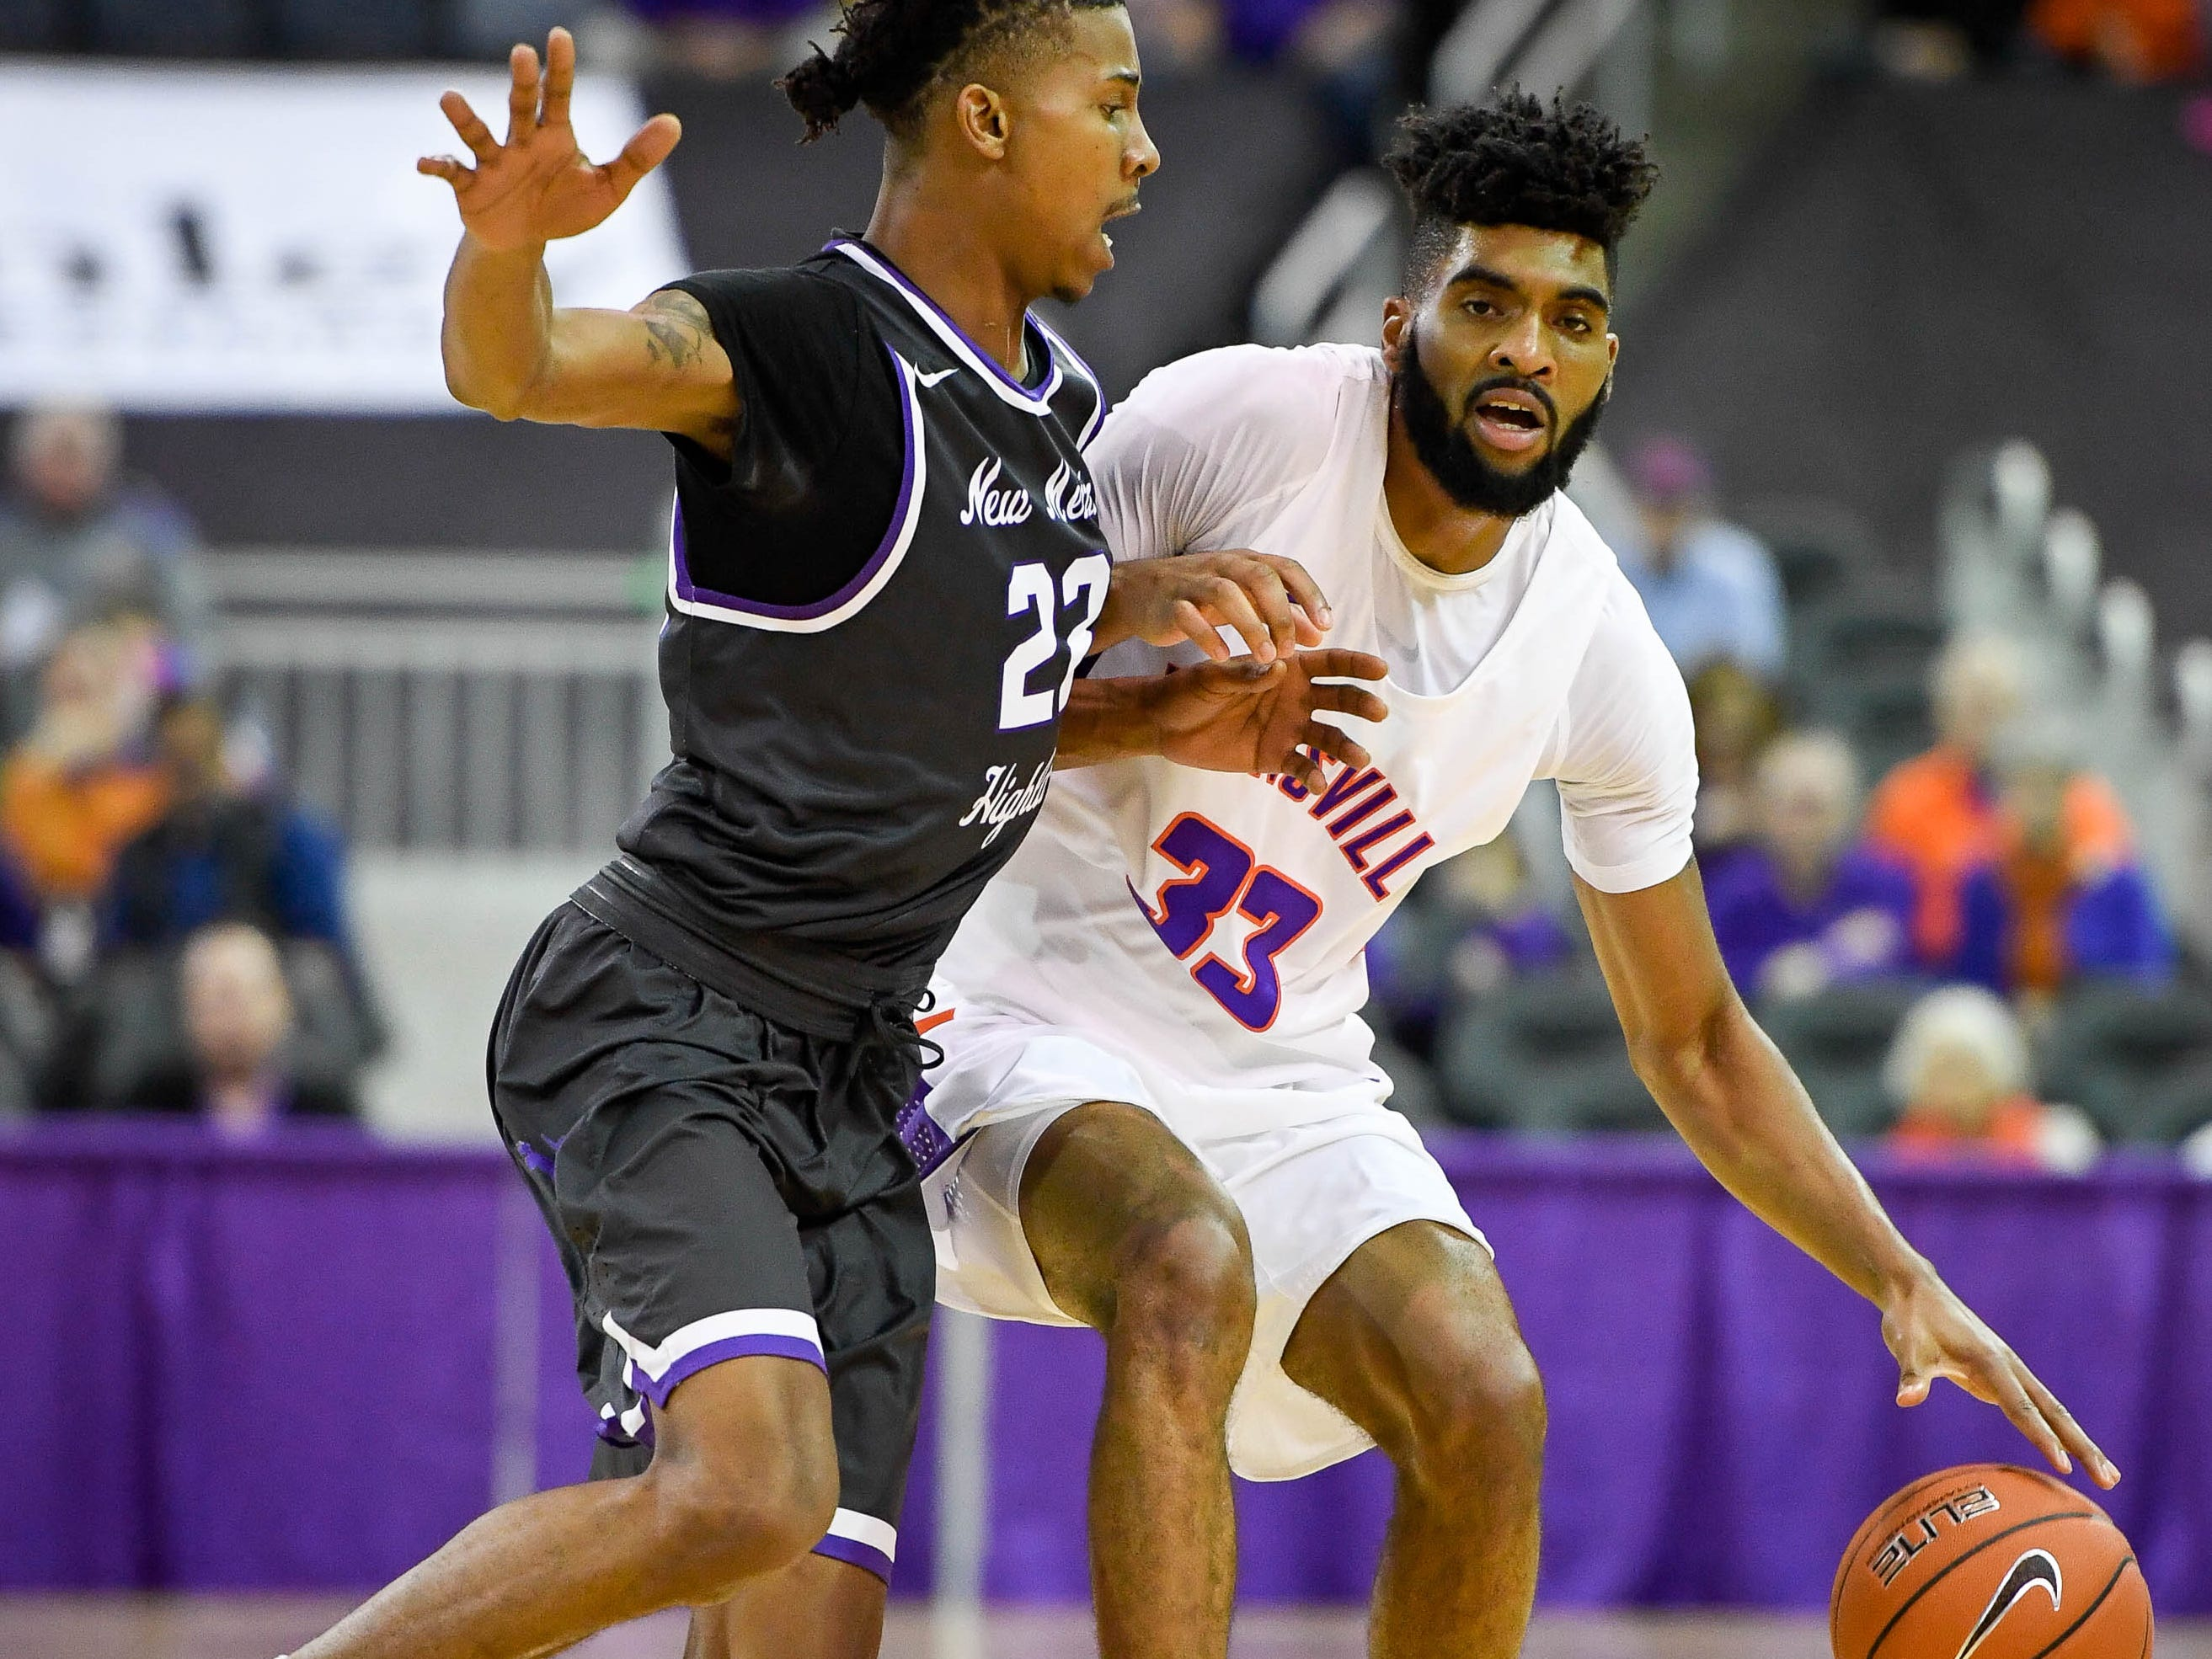 University of Evansville's K.J. Riley (33) drives under pressure from New Mexico Highlands' Marlon Cunningham (23) as the University of Evansville Purple Aces play the New Mexico Highlands Cowboys in a exhibition game at the Ford Center Saturday, November 3, 2018.